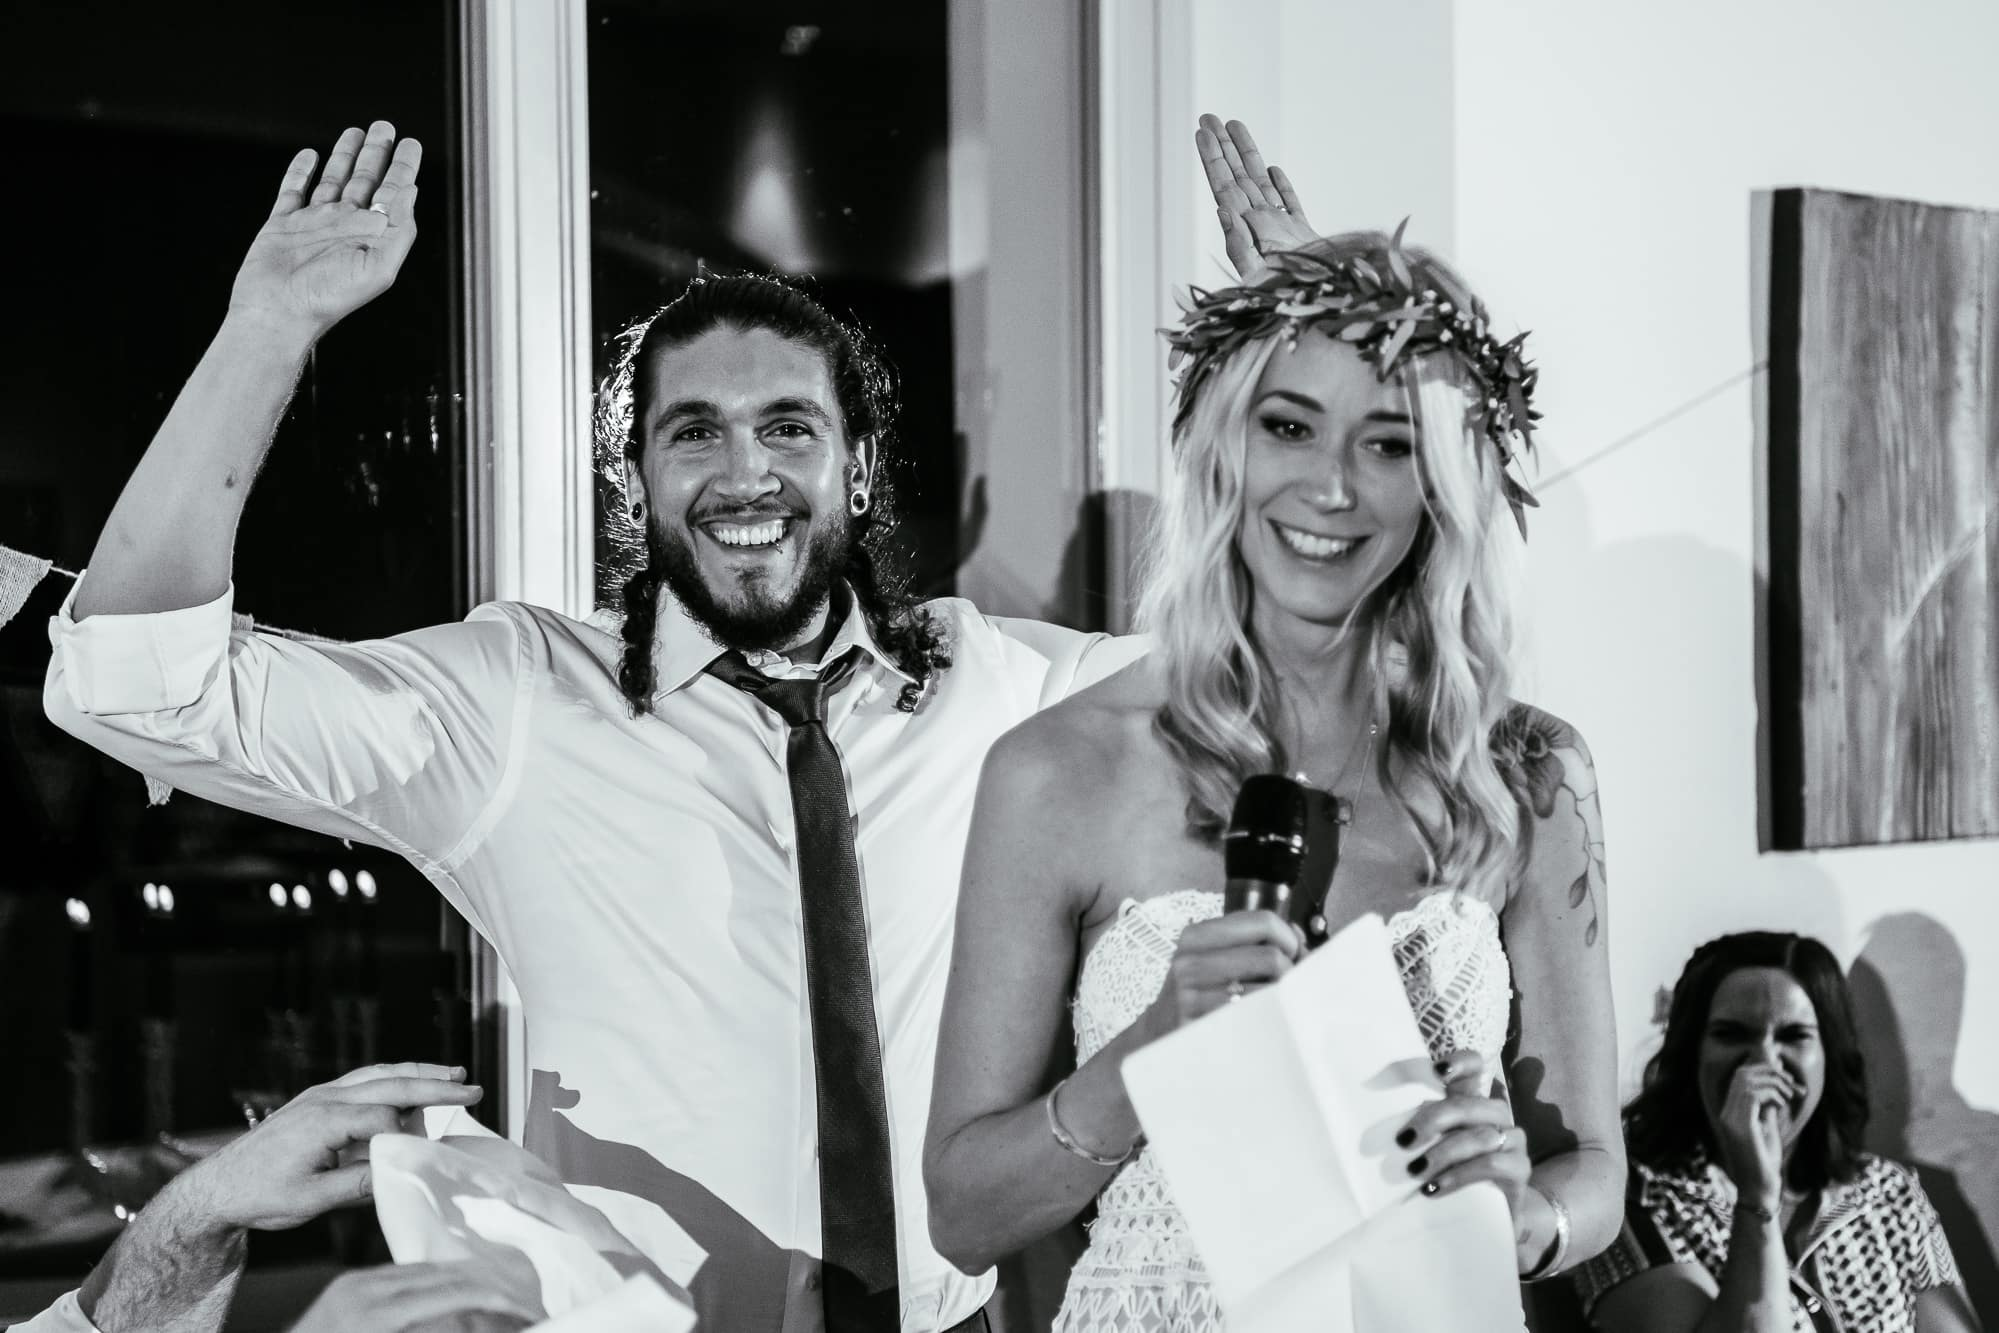 Bride and groom laughing with grooms arm in the air